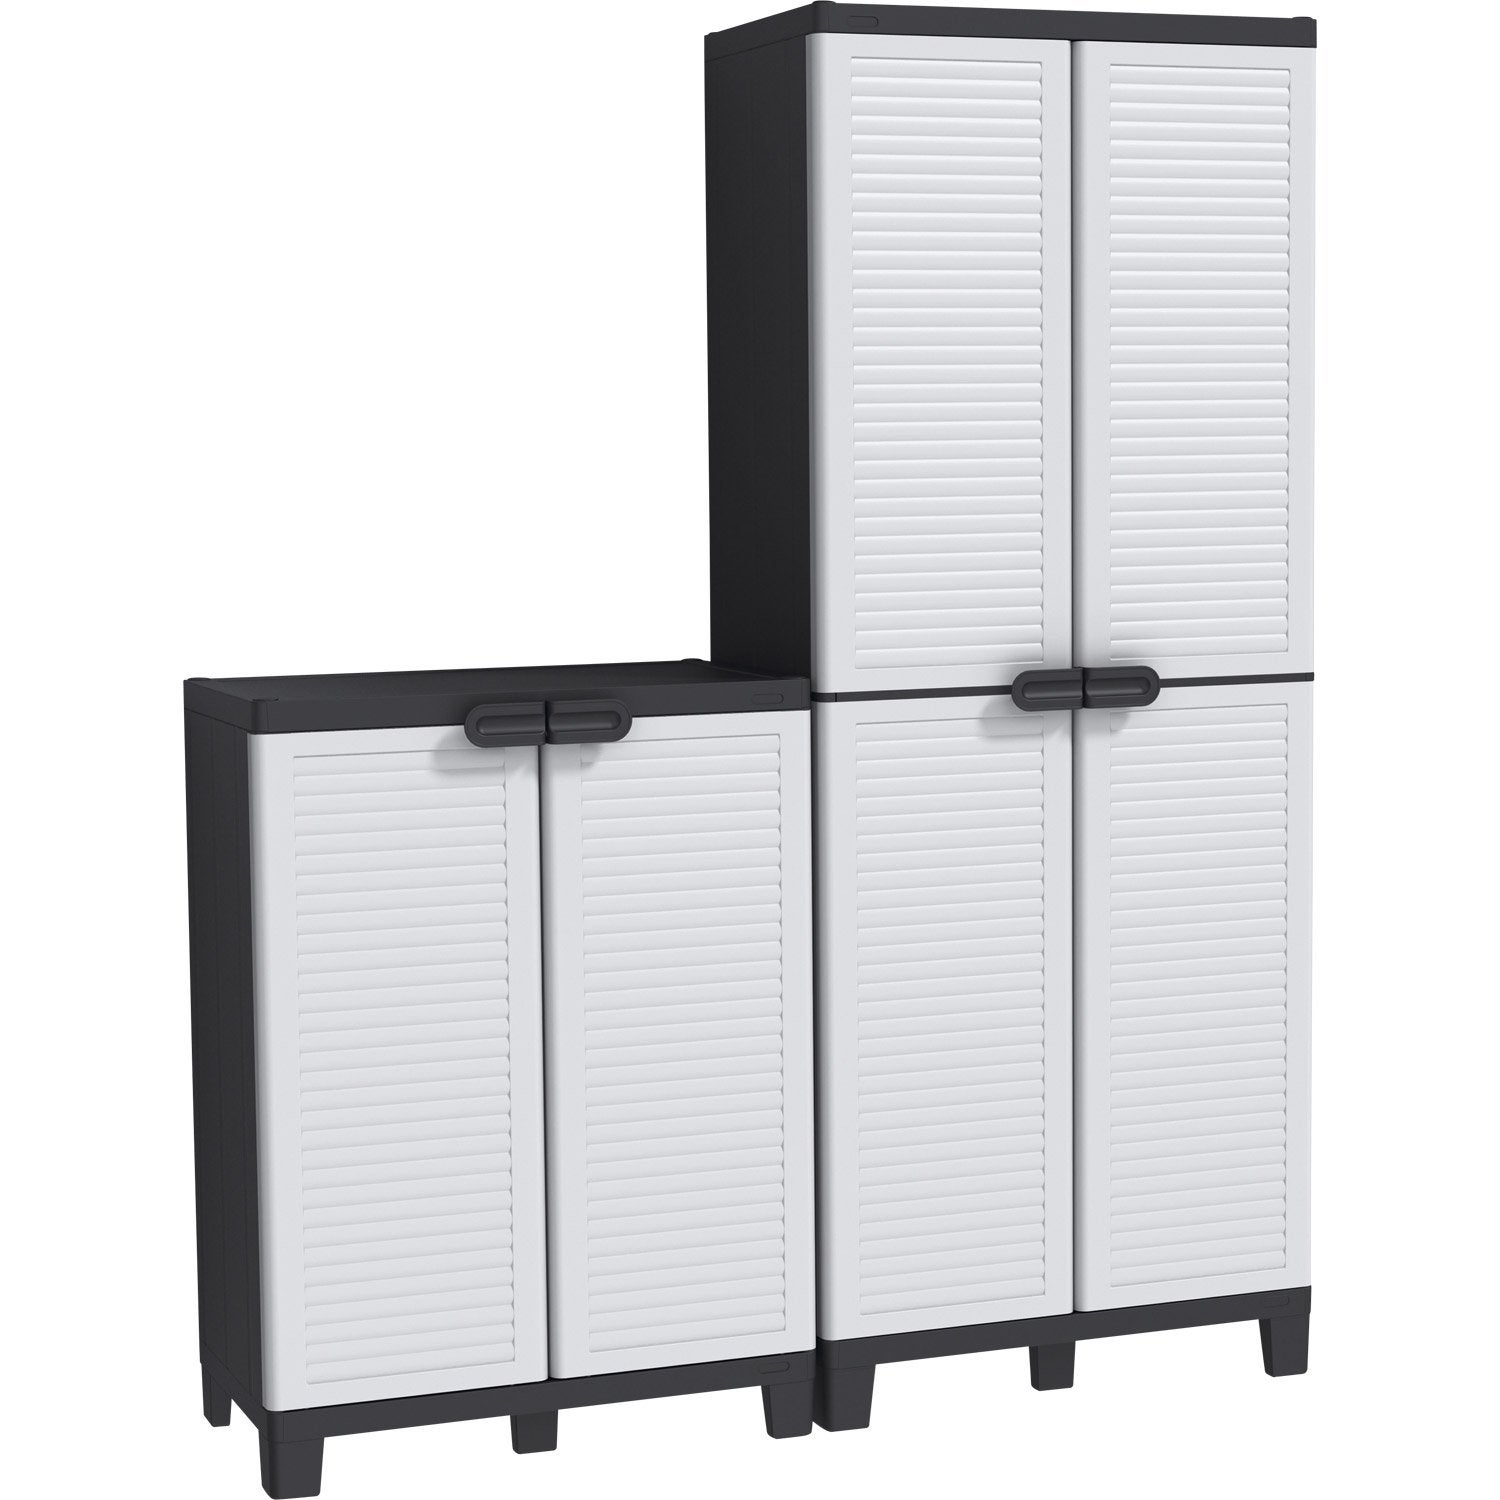 Armoire haute 3 tablettes armoire basse 1 tablette r sine allibert spacewin - Armoire plastique leroy merlin ...